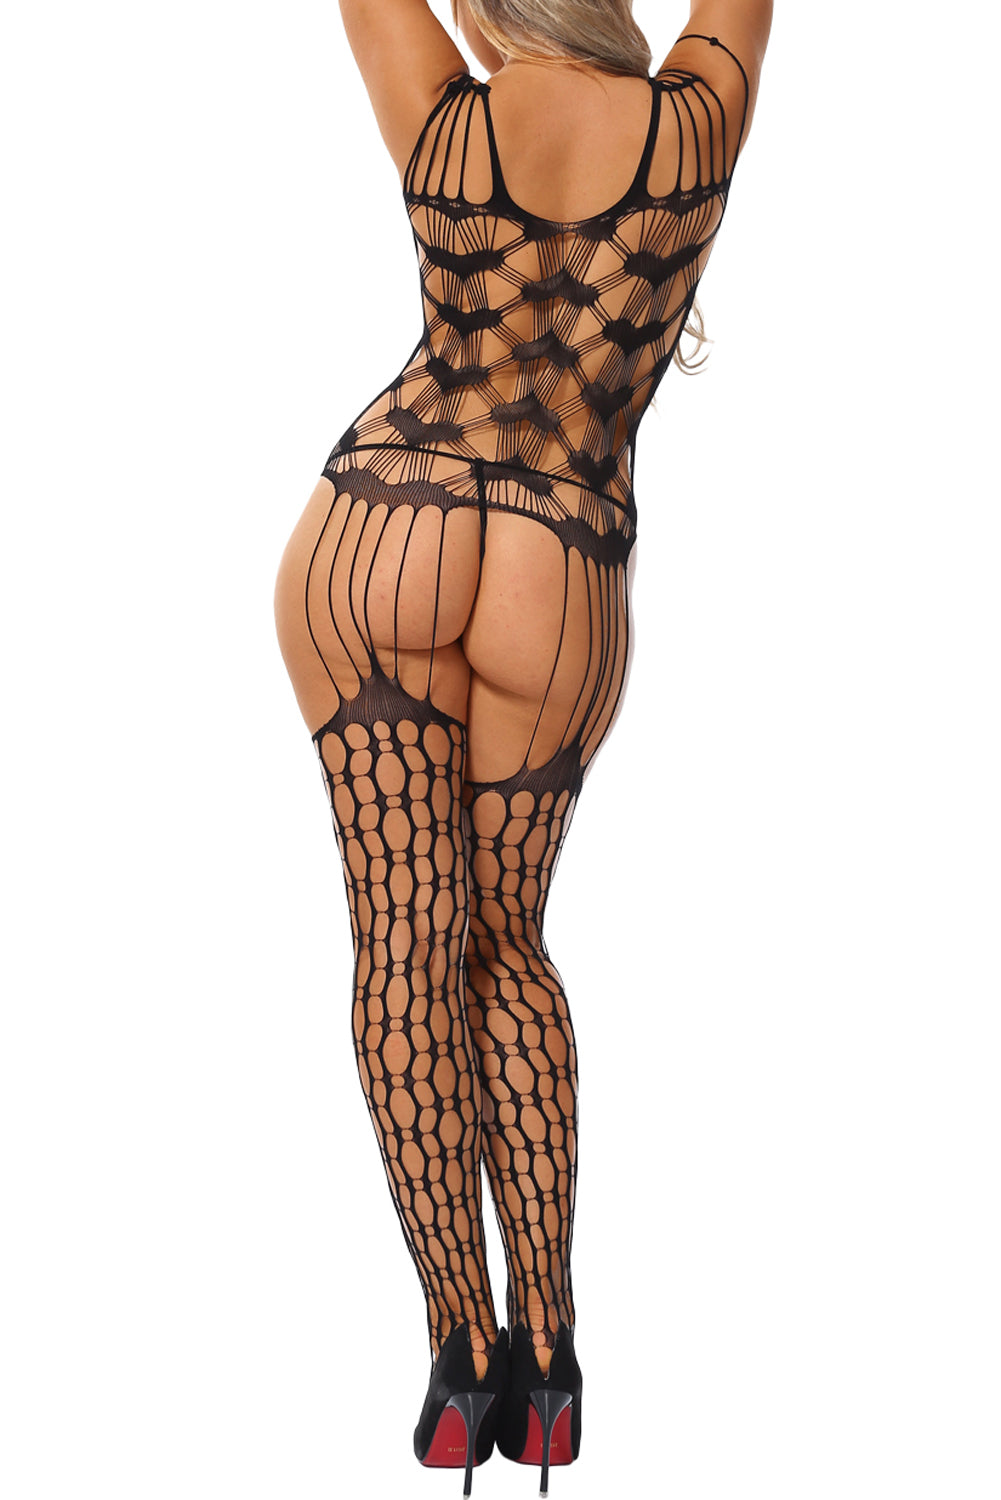 Shredded Shoulder Heart Pattern Hollow-out Bodystocking